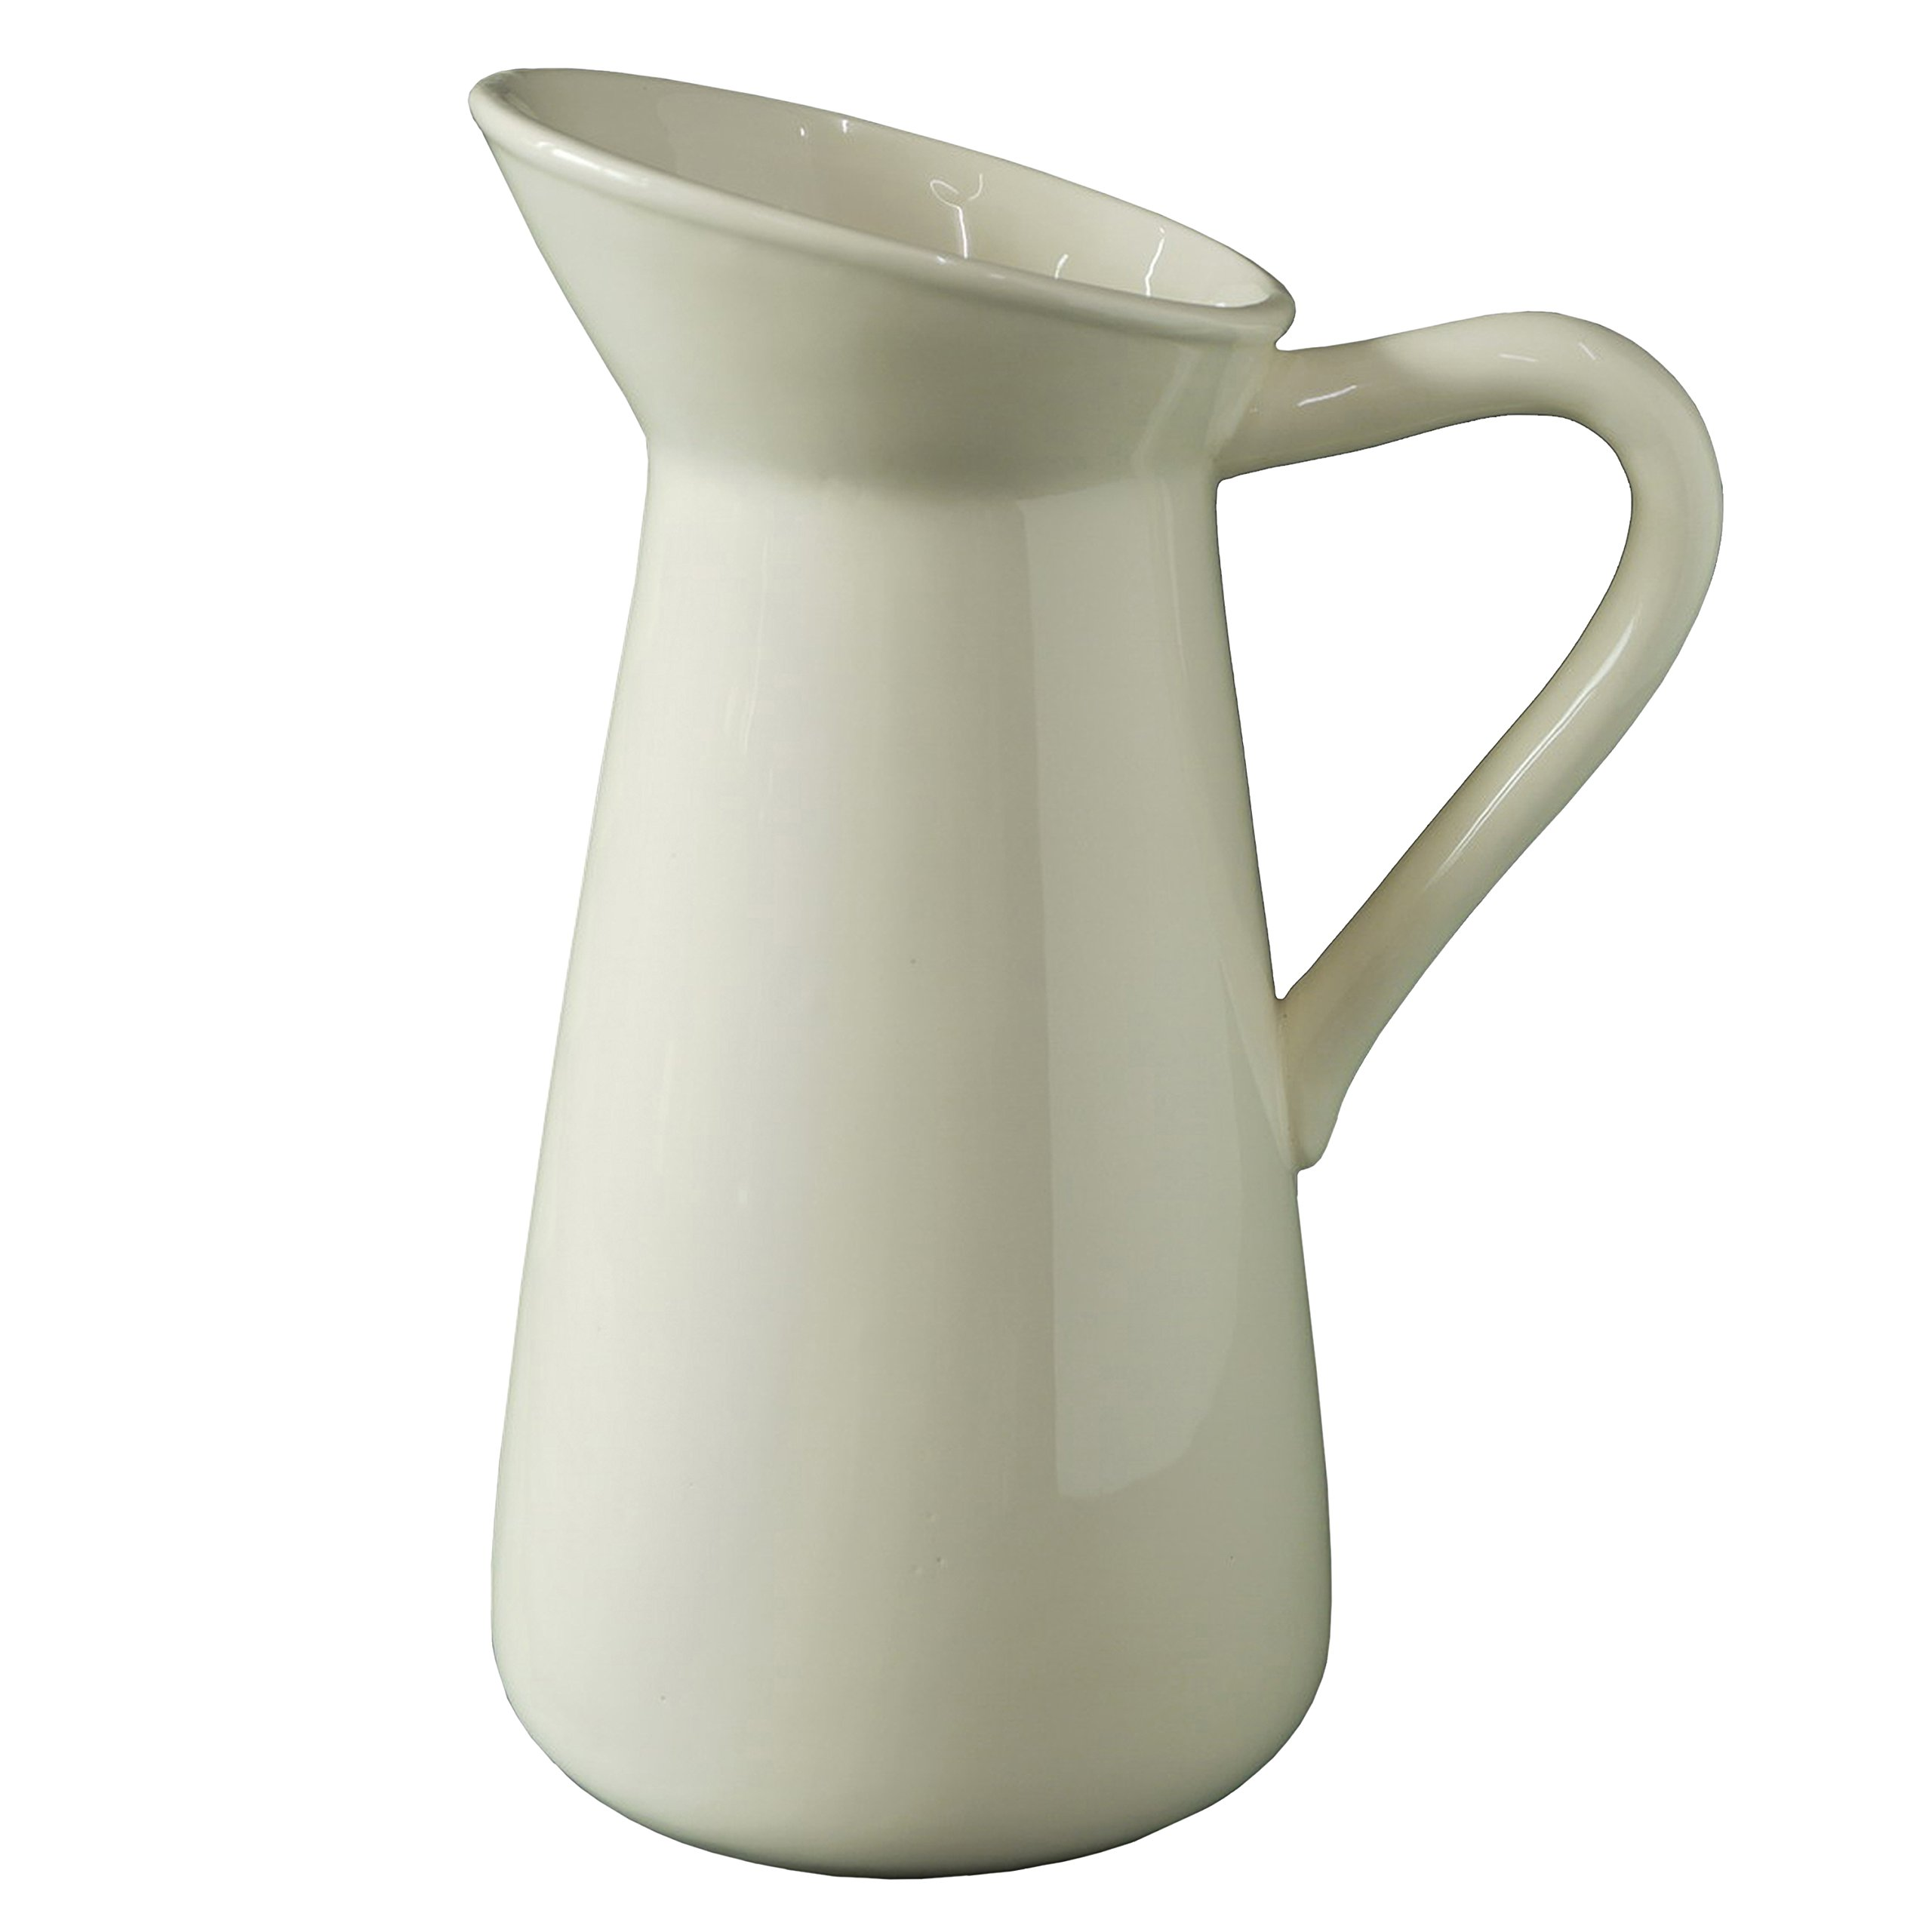 Hosley Cream Ceramic Pitcher/Vase - 10'' High, for Flowers/Decorative Use. Ideal for Dried Floral Arrangements Gifts for Home, Weddings, Spa and Aromatherapy Settings O3